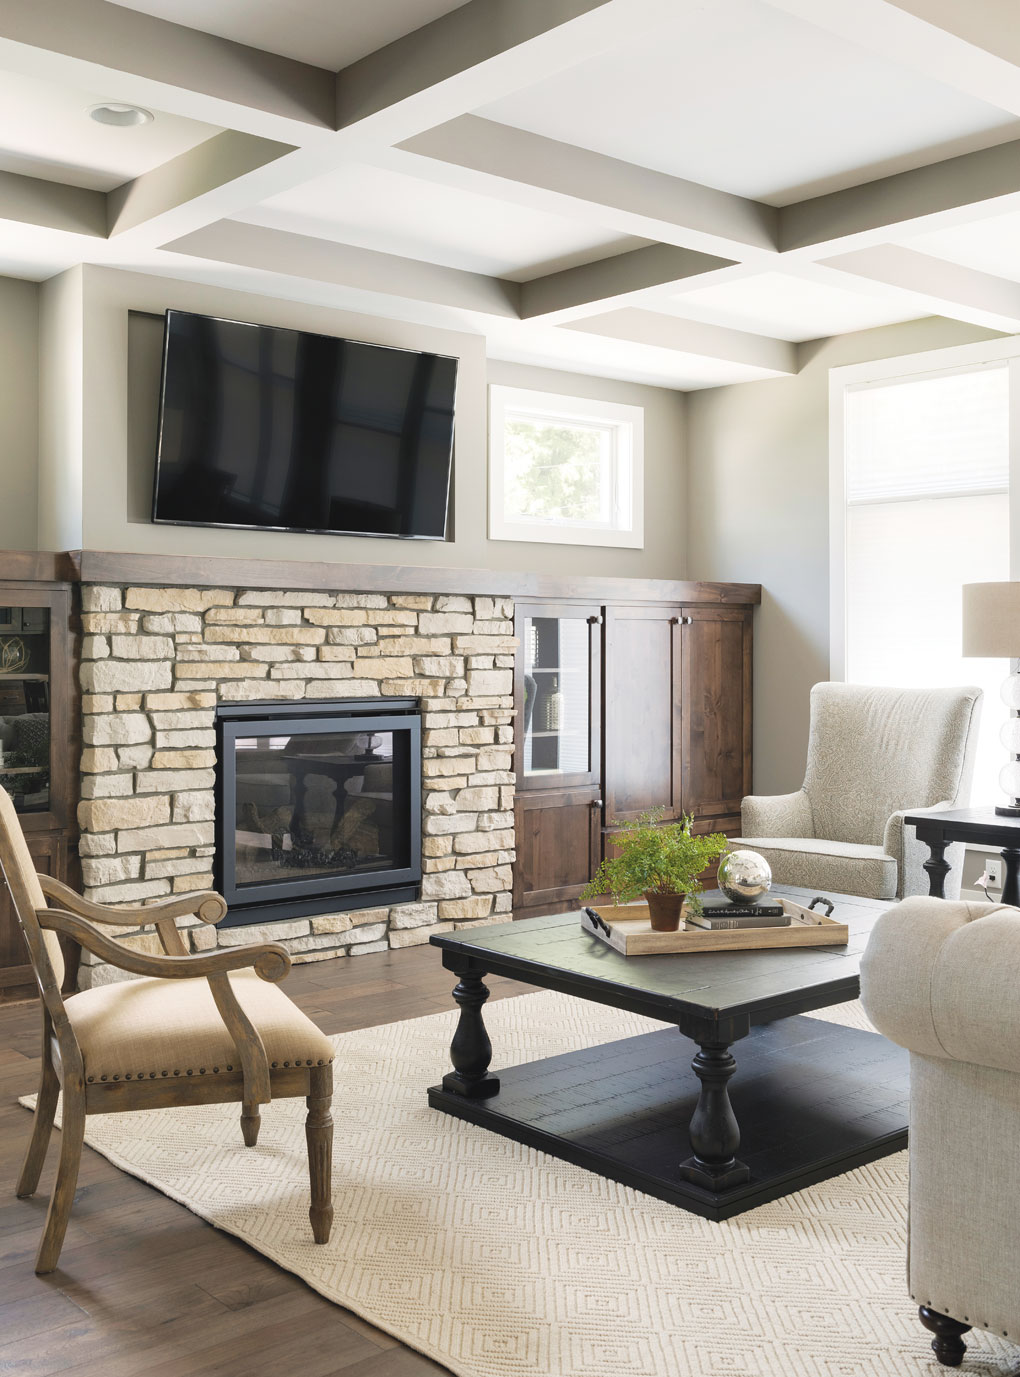 A living room with a coffered ceiling, television set above a fireplace, and a coffee table surrounded by a sofa and chairs.